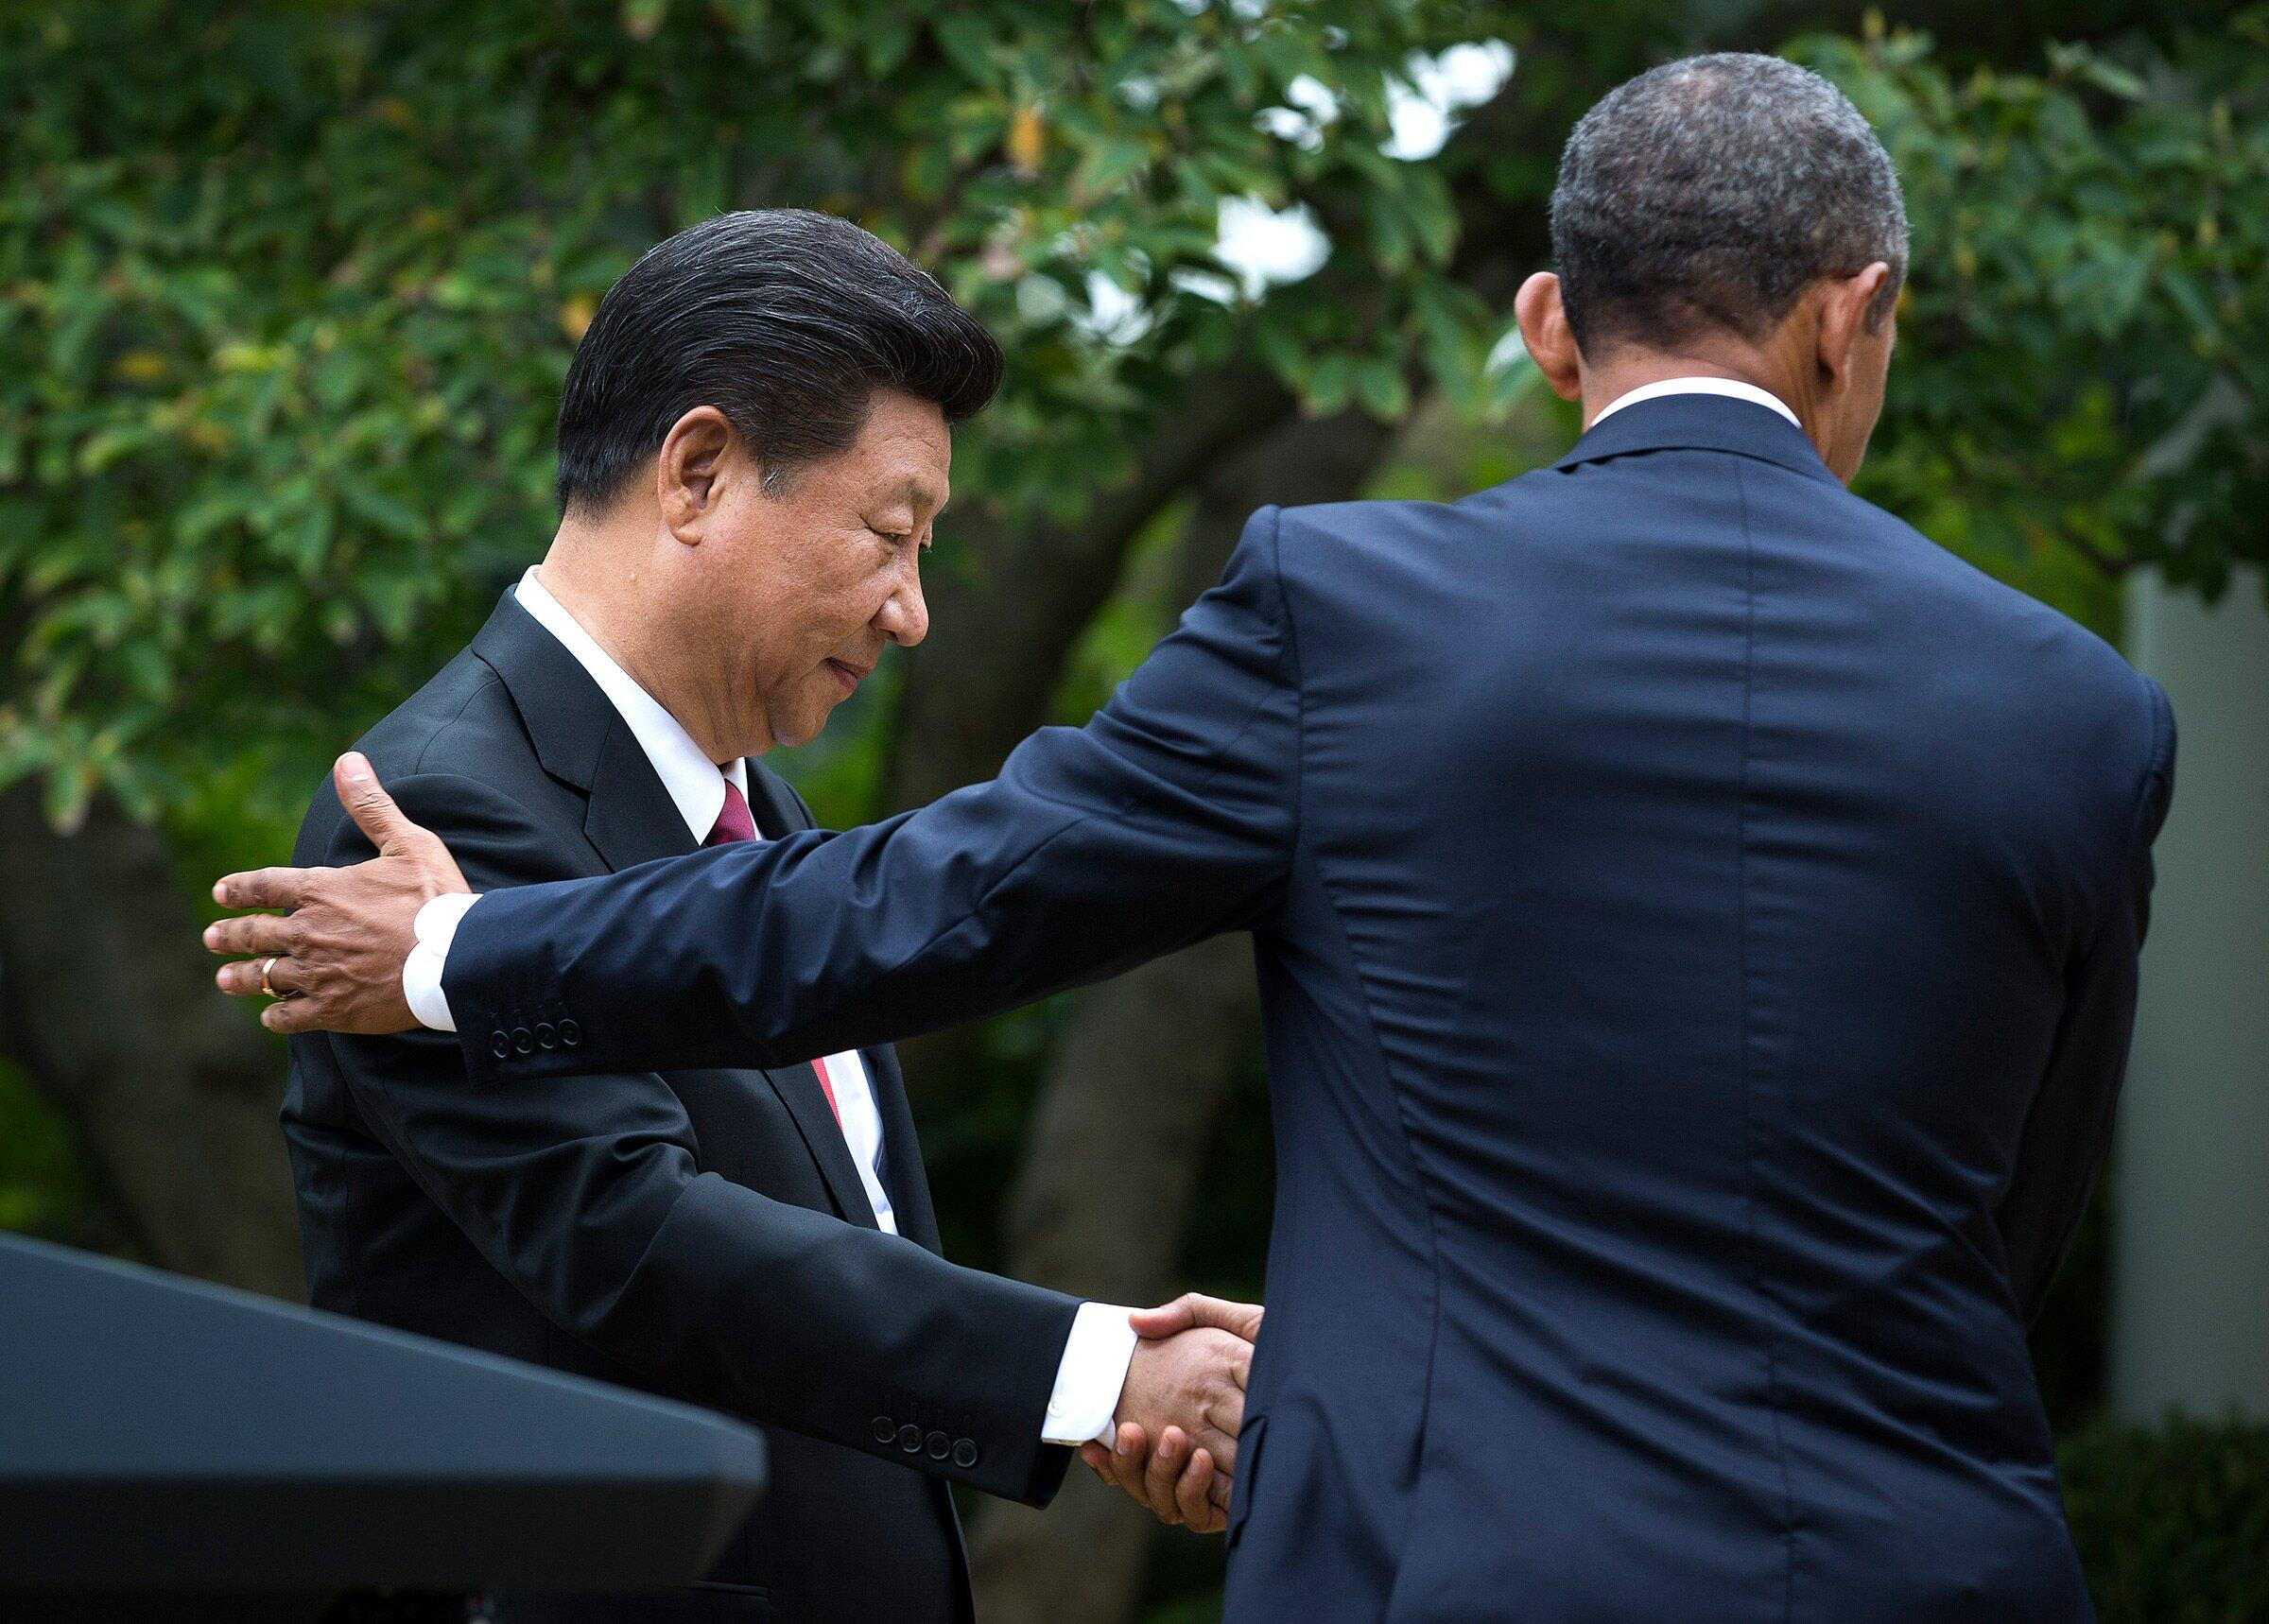 The U.S. Relationship With China Is in Trouble. That's a Challenge for Climate Change